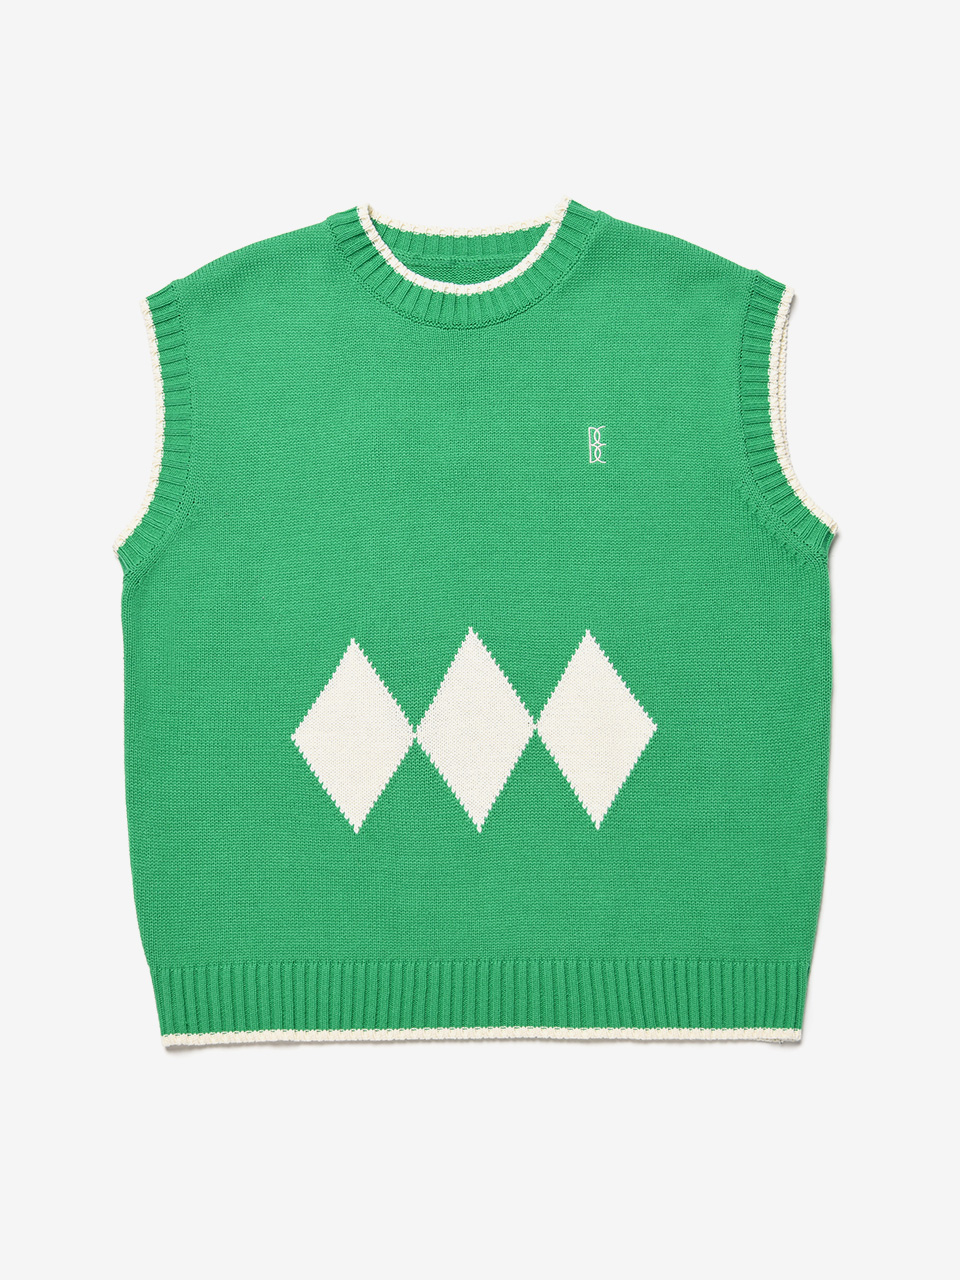 BENSIMON ARGYLE KNIT VEST (FOR MEN) - GREEN